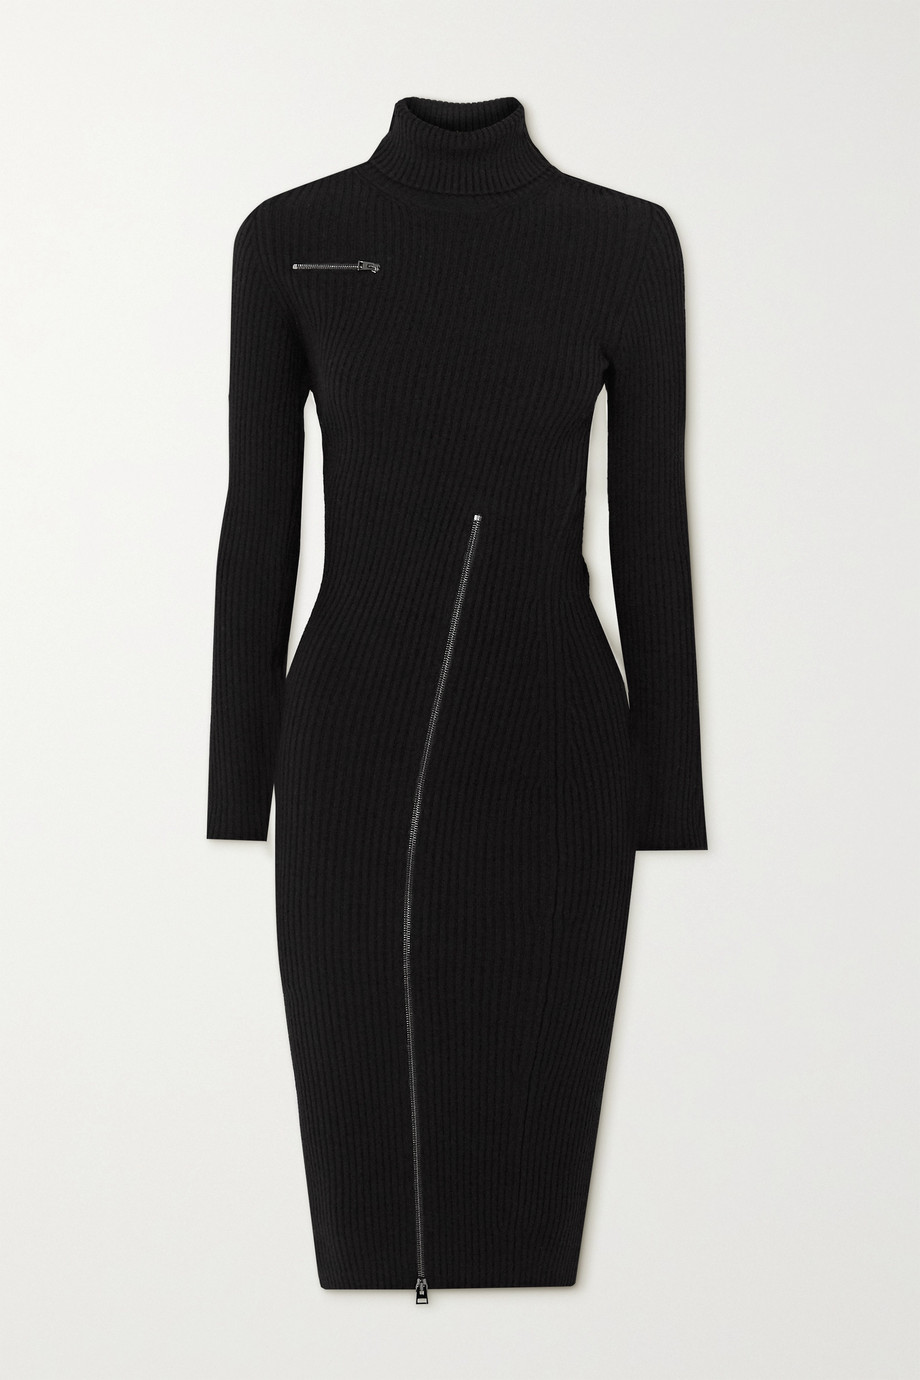 TOM FORD Zip-detailed ribbed wool-blend turtleneck dress